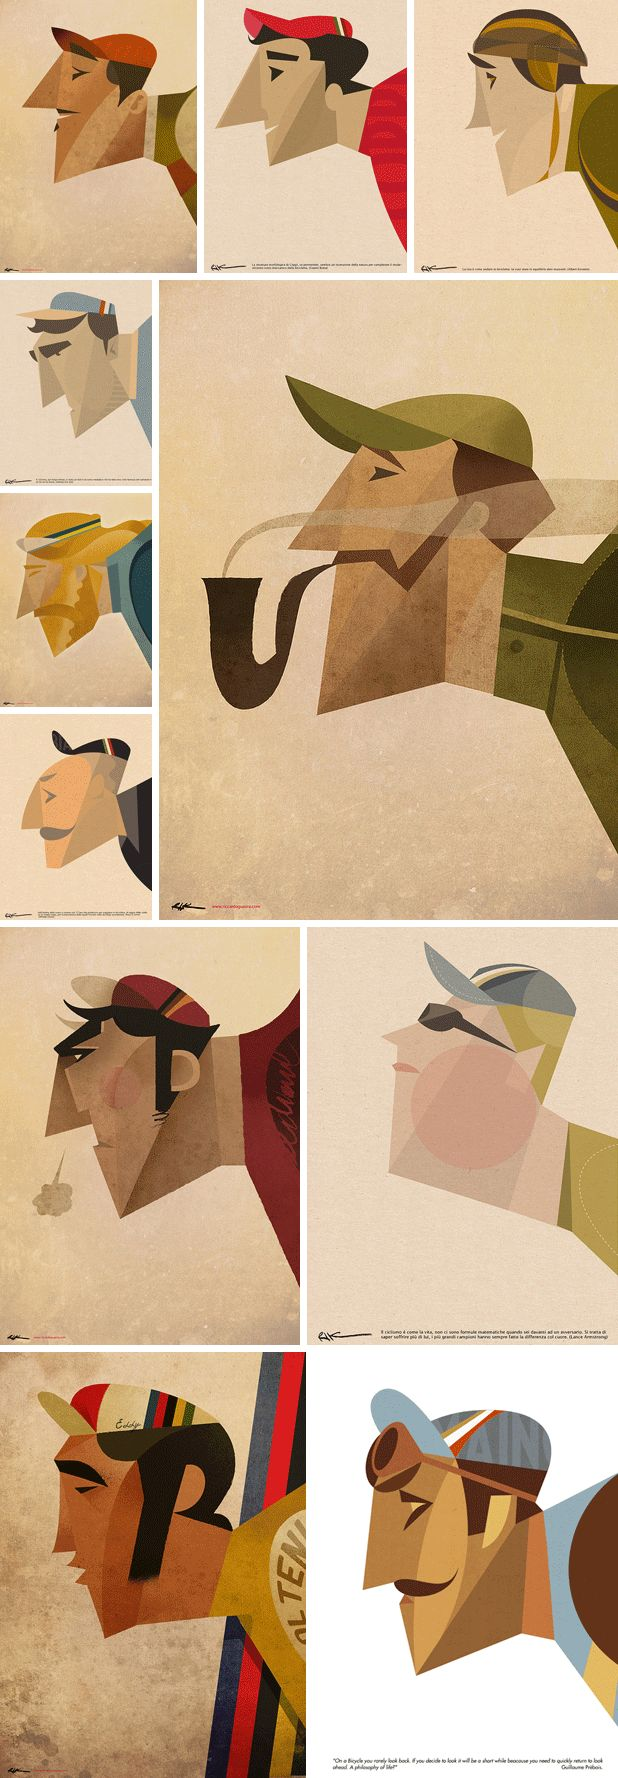 Dream team cyclist illustrations by Riccardo Guasco  #poster #flat #illustration http://www.artcoursework.com/illustration.html